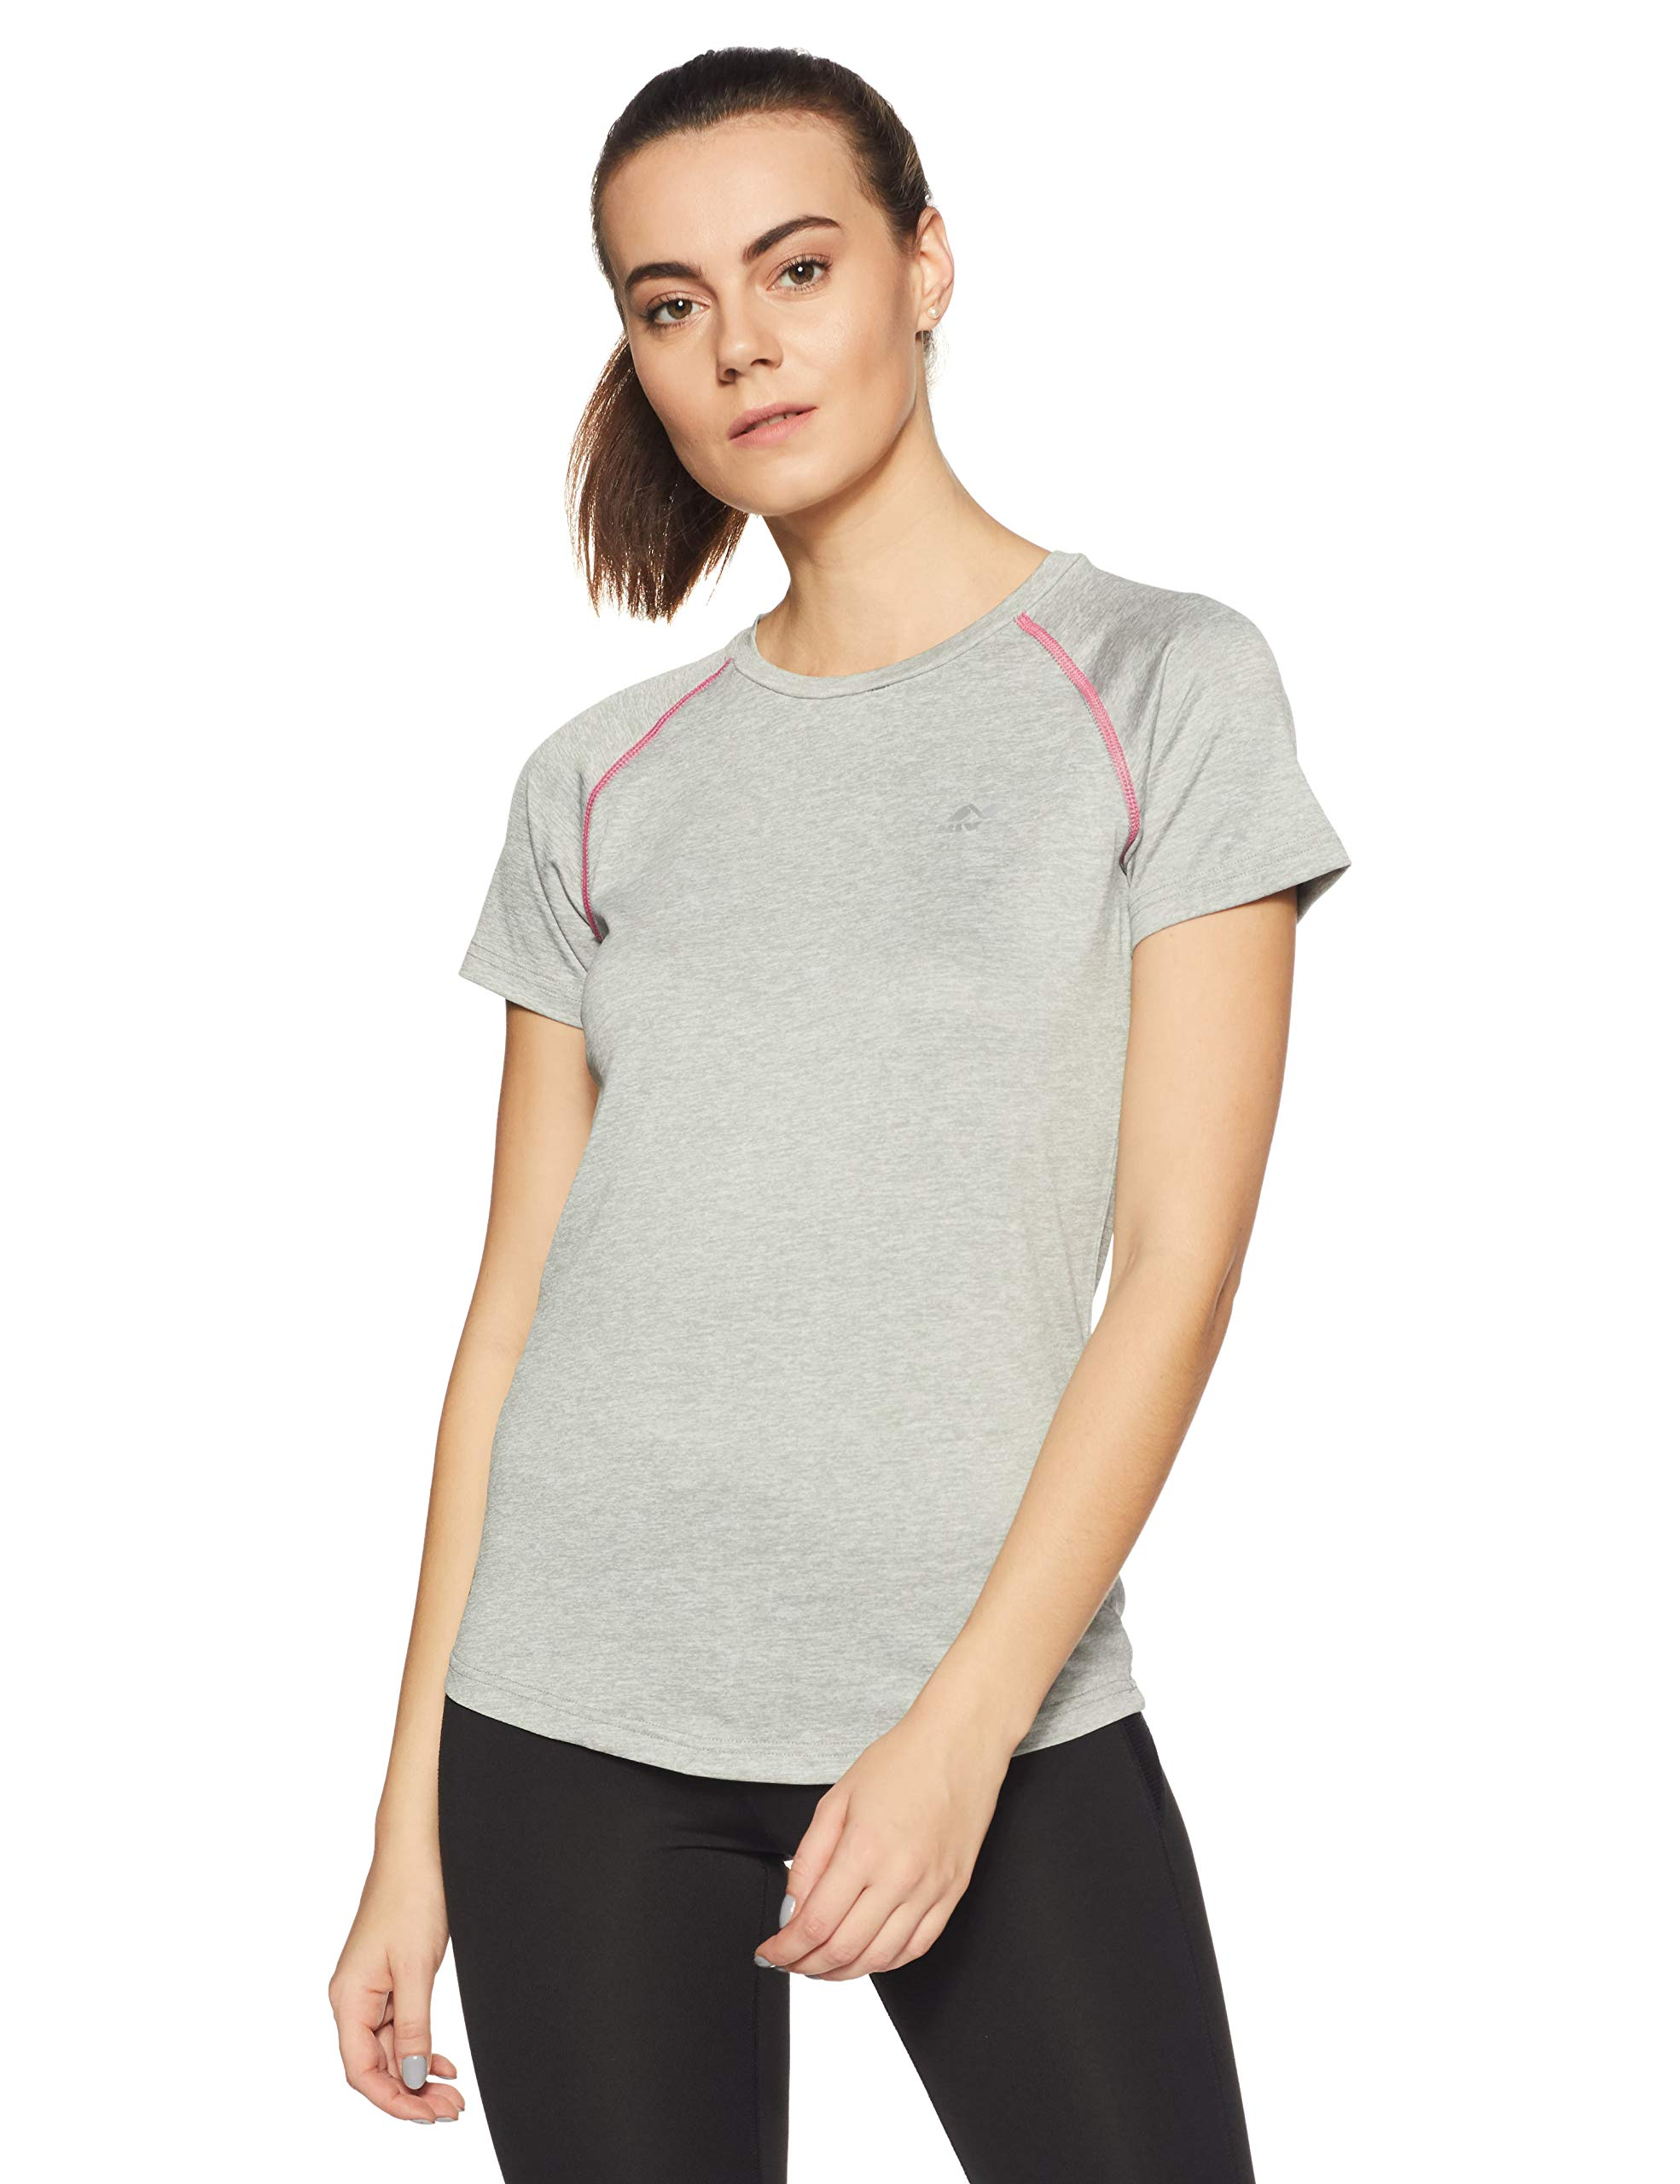 NIVIA Hydra-2 Fitness Female T-Shirt product image